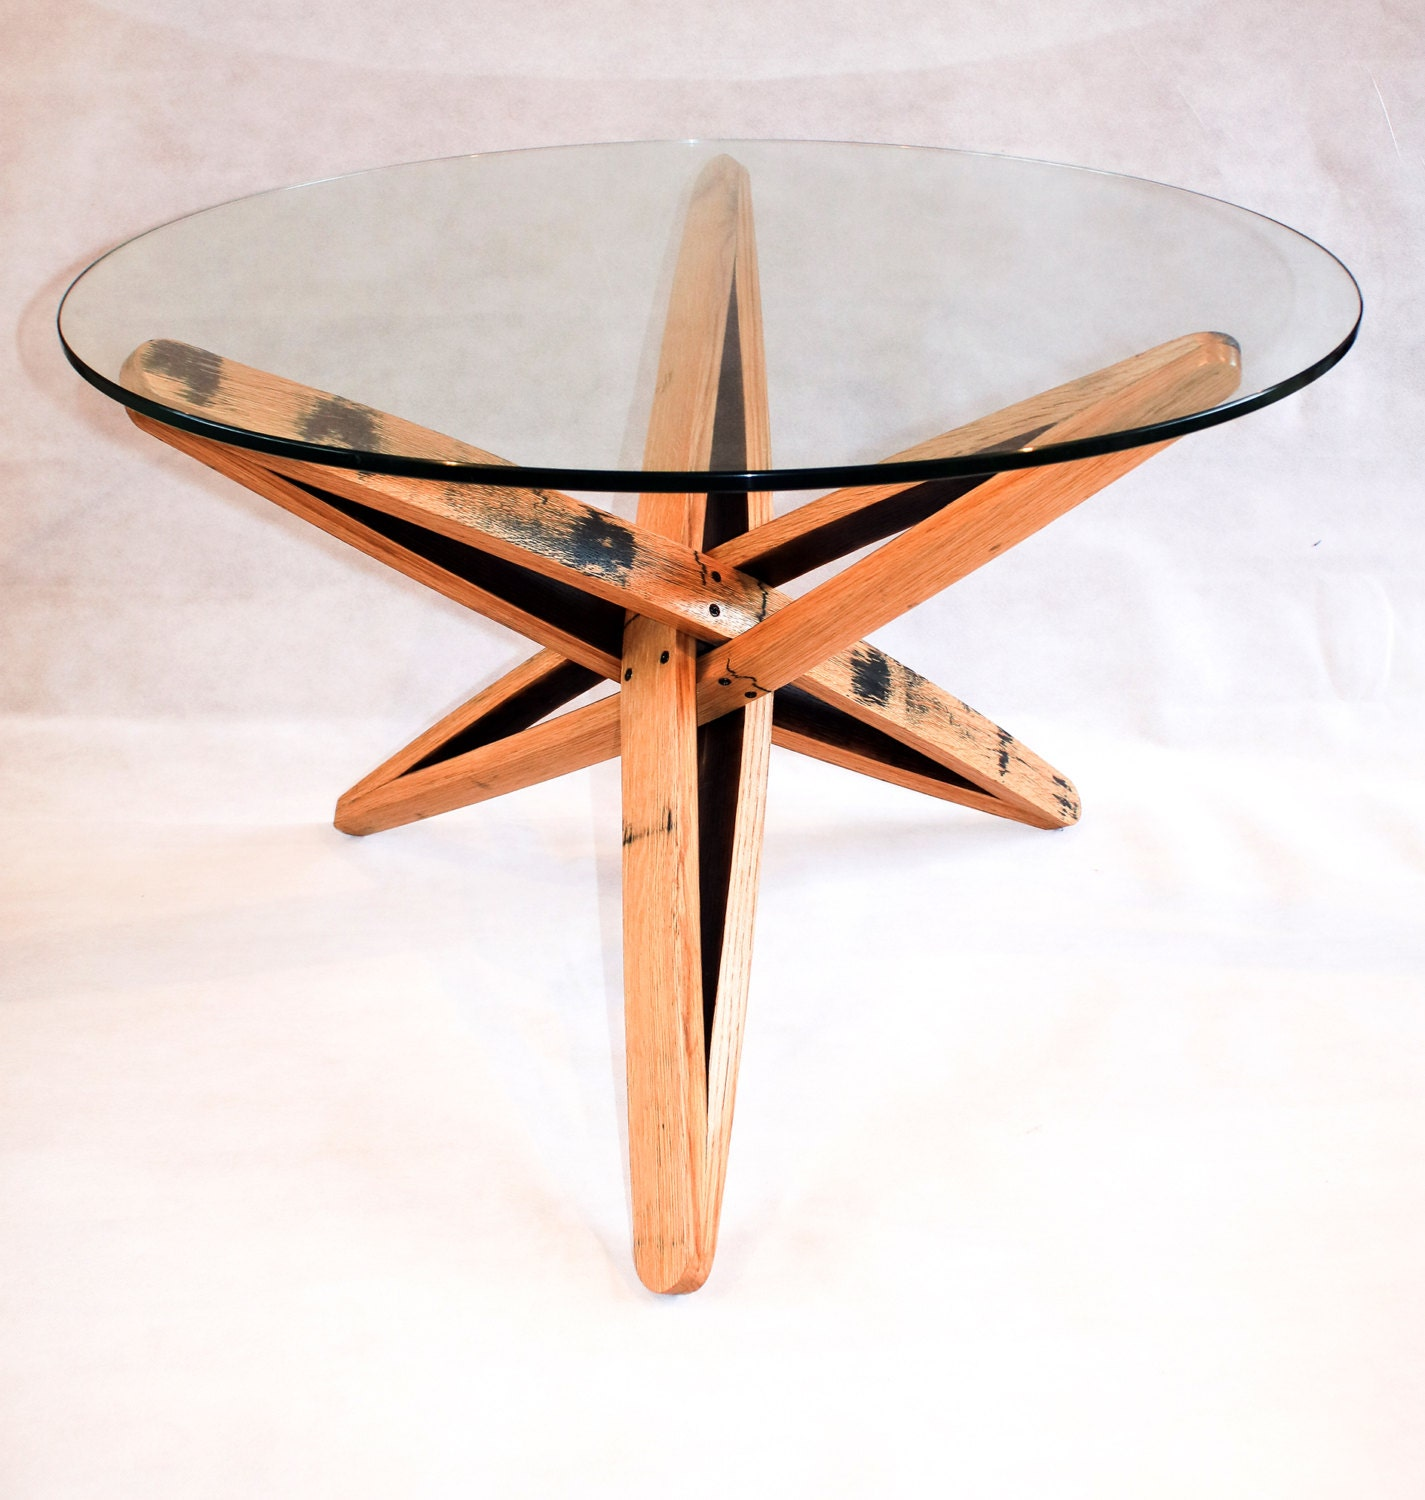 Glass Coffee Tables Etsy: Oak Whisky Barrel Stave Coffee Table With Glass Top